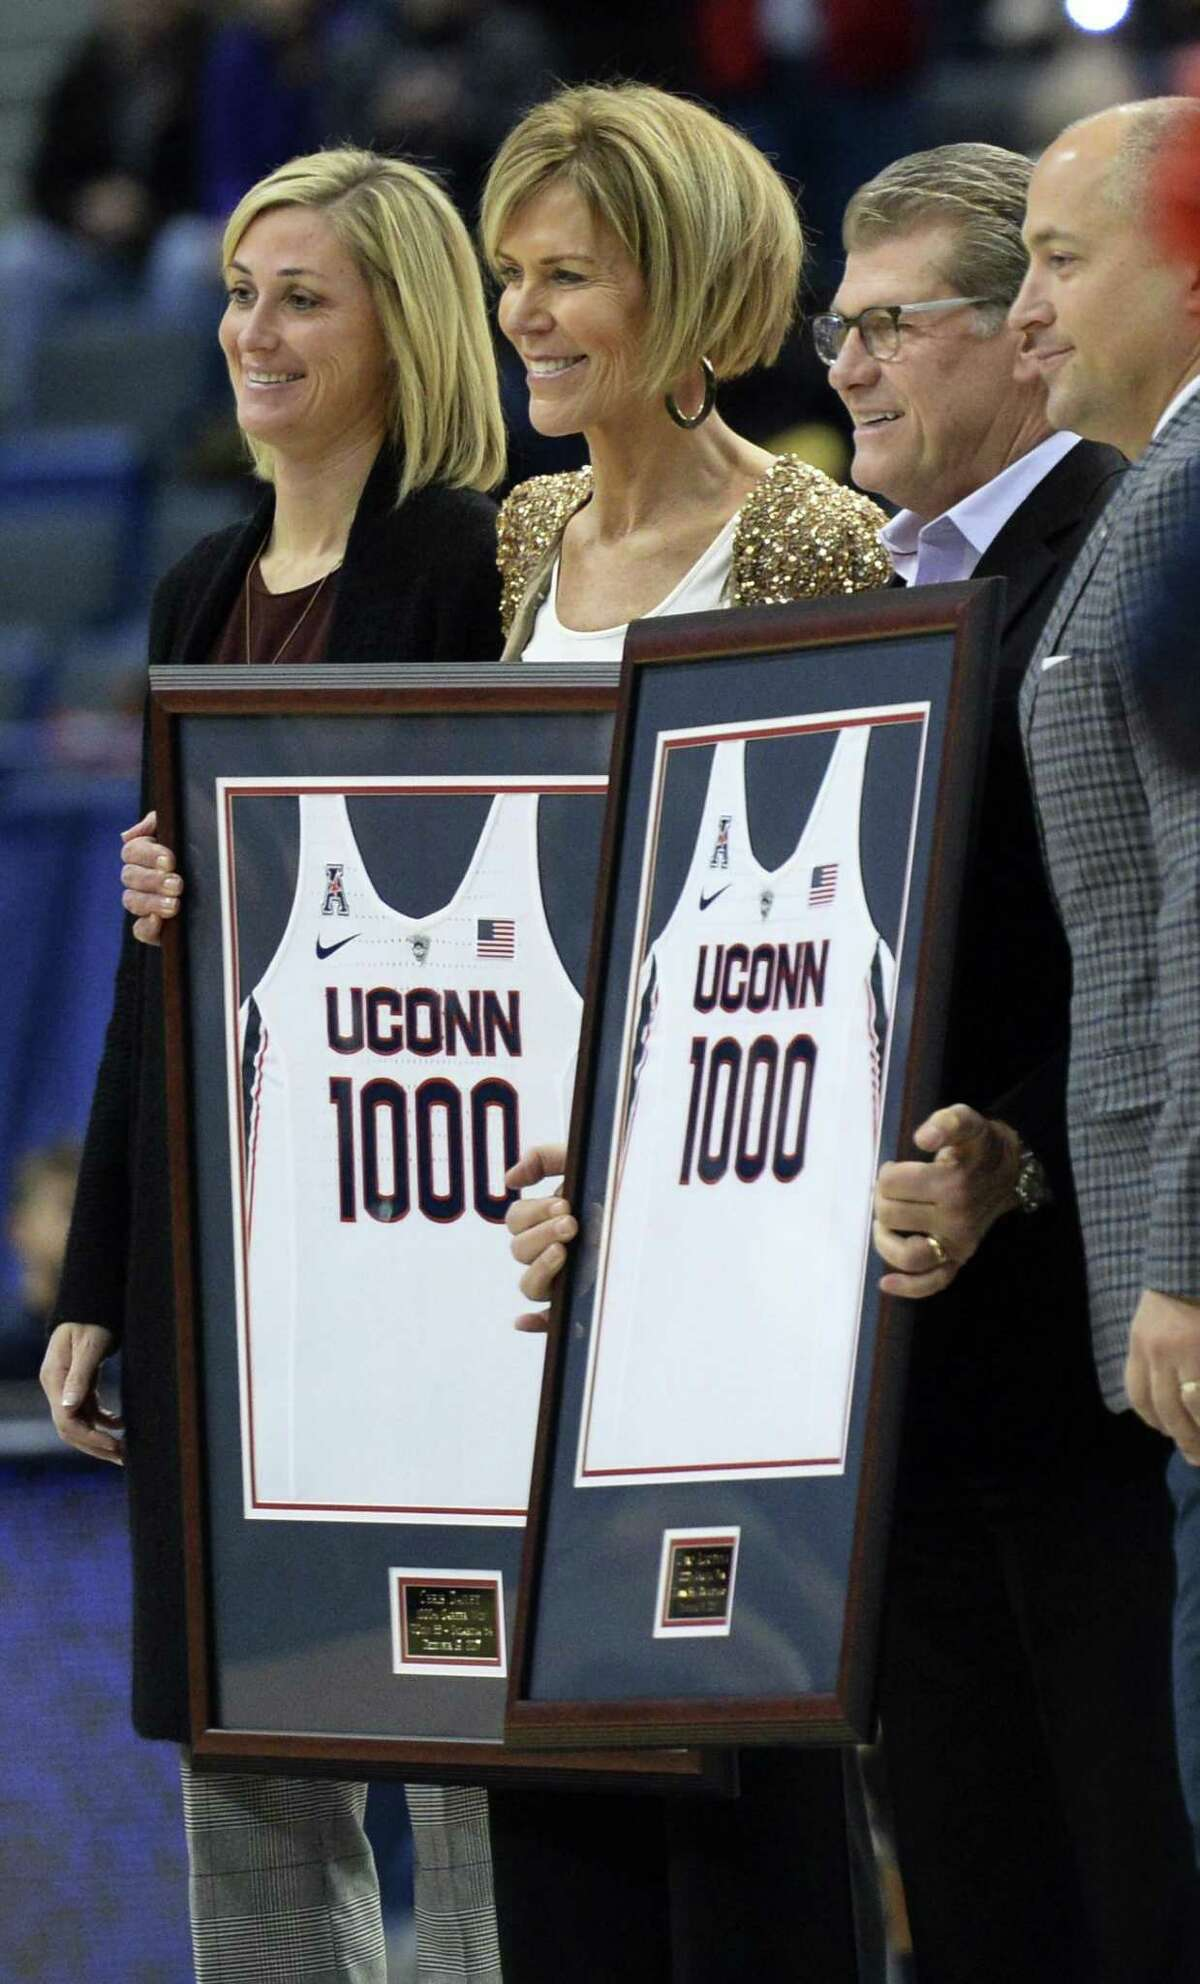 UConn associate head coach Chris Dailey, second from left, was named a finalist for the Women's Basketball Hall of Fame Class of 2018.